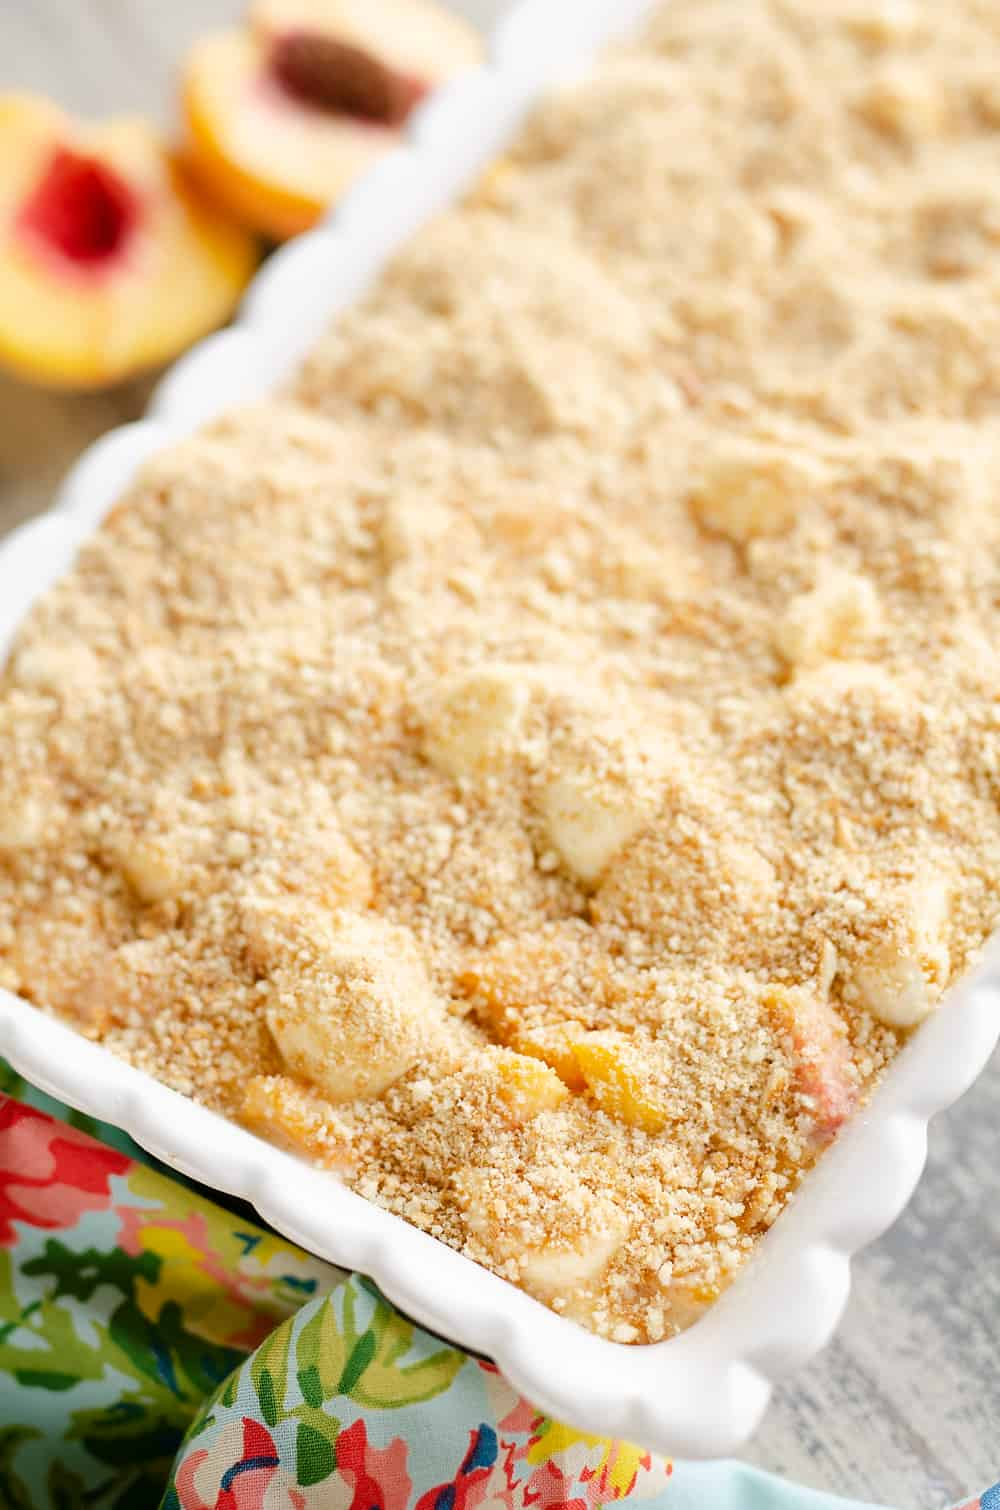 Marshmallow Peach Icebox Dessert in serving pan